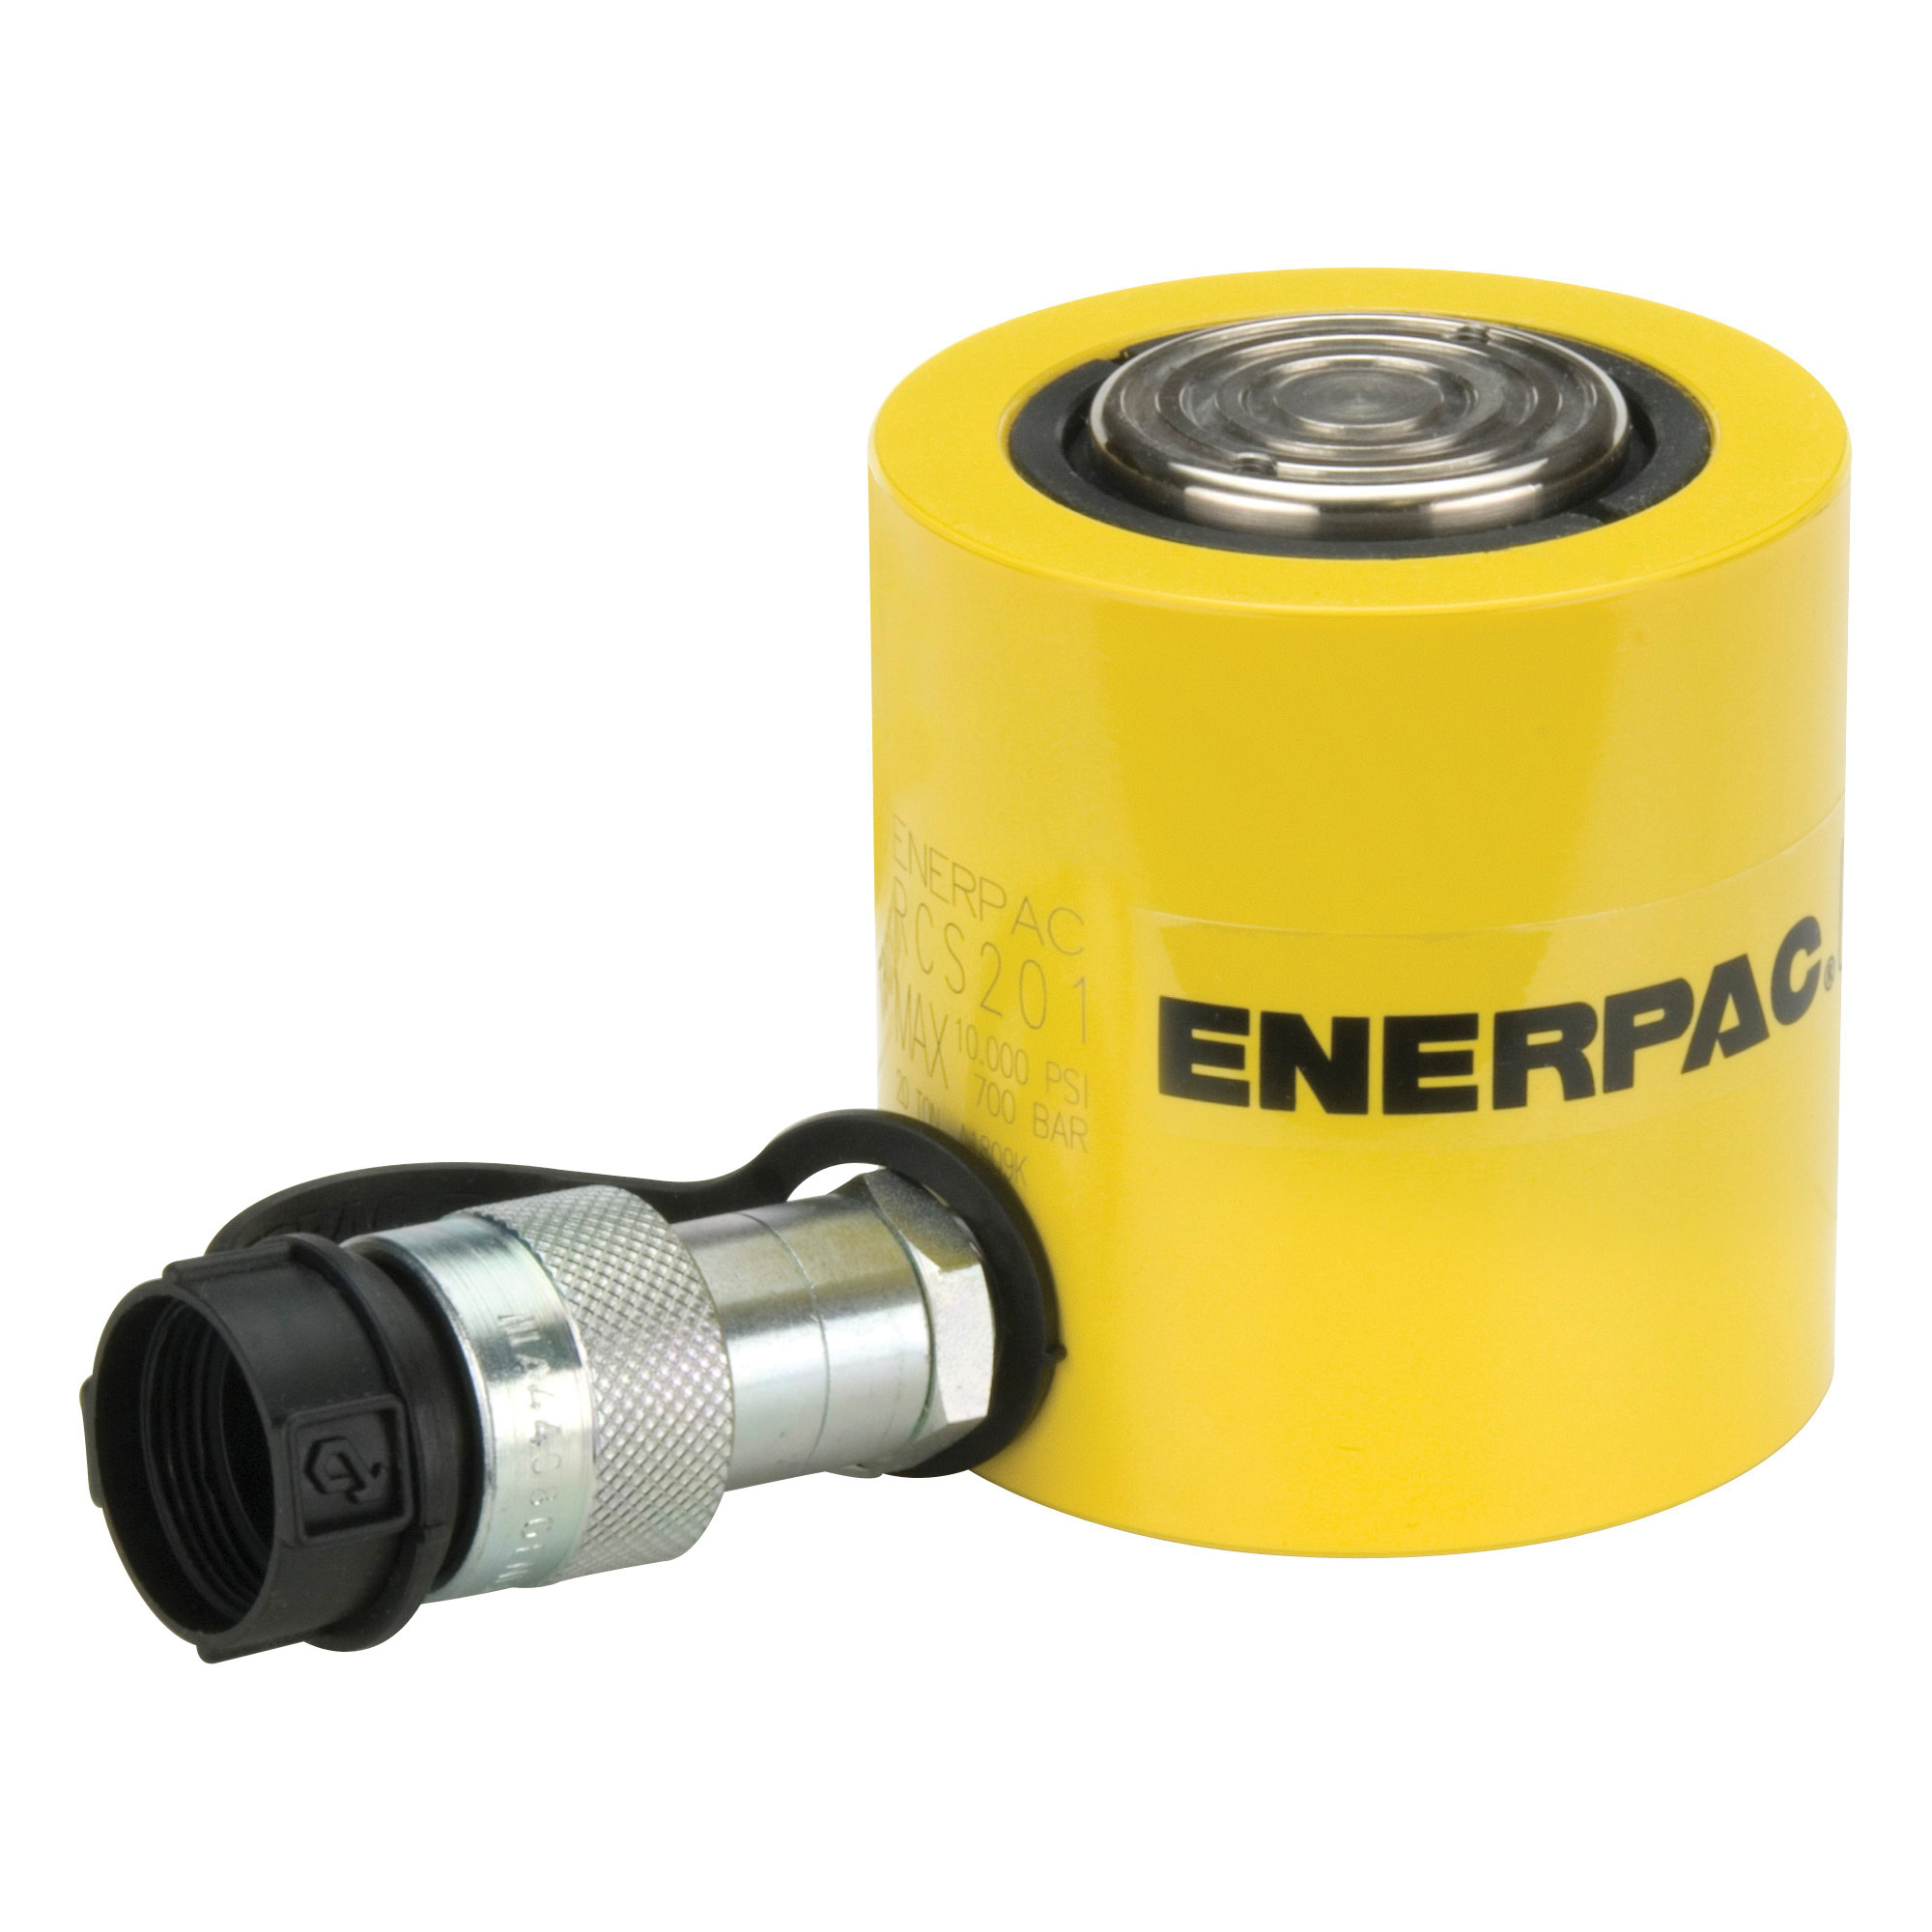 Enerpac® Flat-Jac® RCS-101 Low Height Single Acting Spring Return Hydraulic Cylinder, 10 ton Capacity, 1.69 in Dia Bore, 1-1/2 in L Stroke, 3.47 in H Retract, 1-1/2 in Dia Rod, 10000 psi